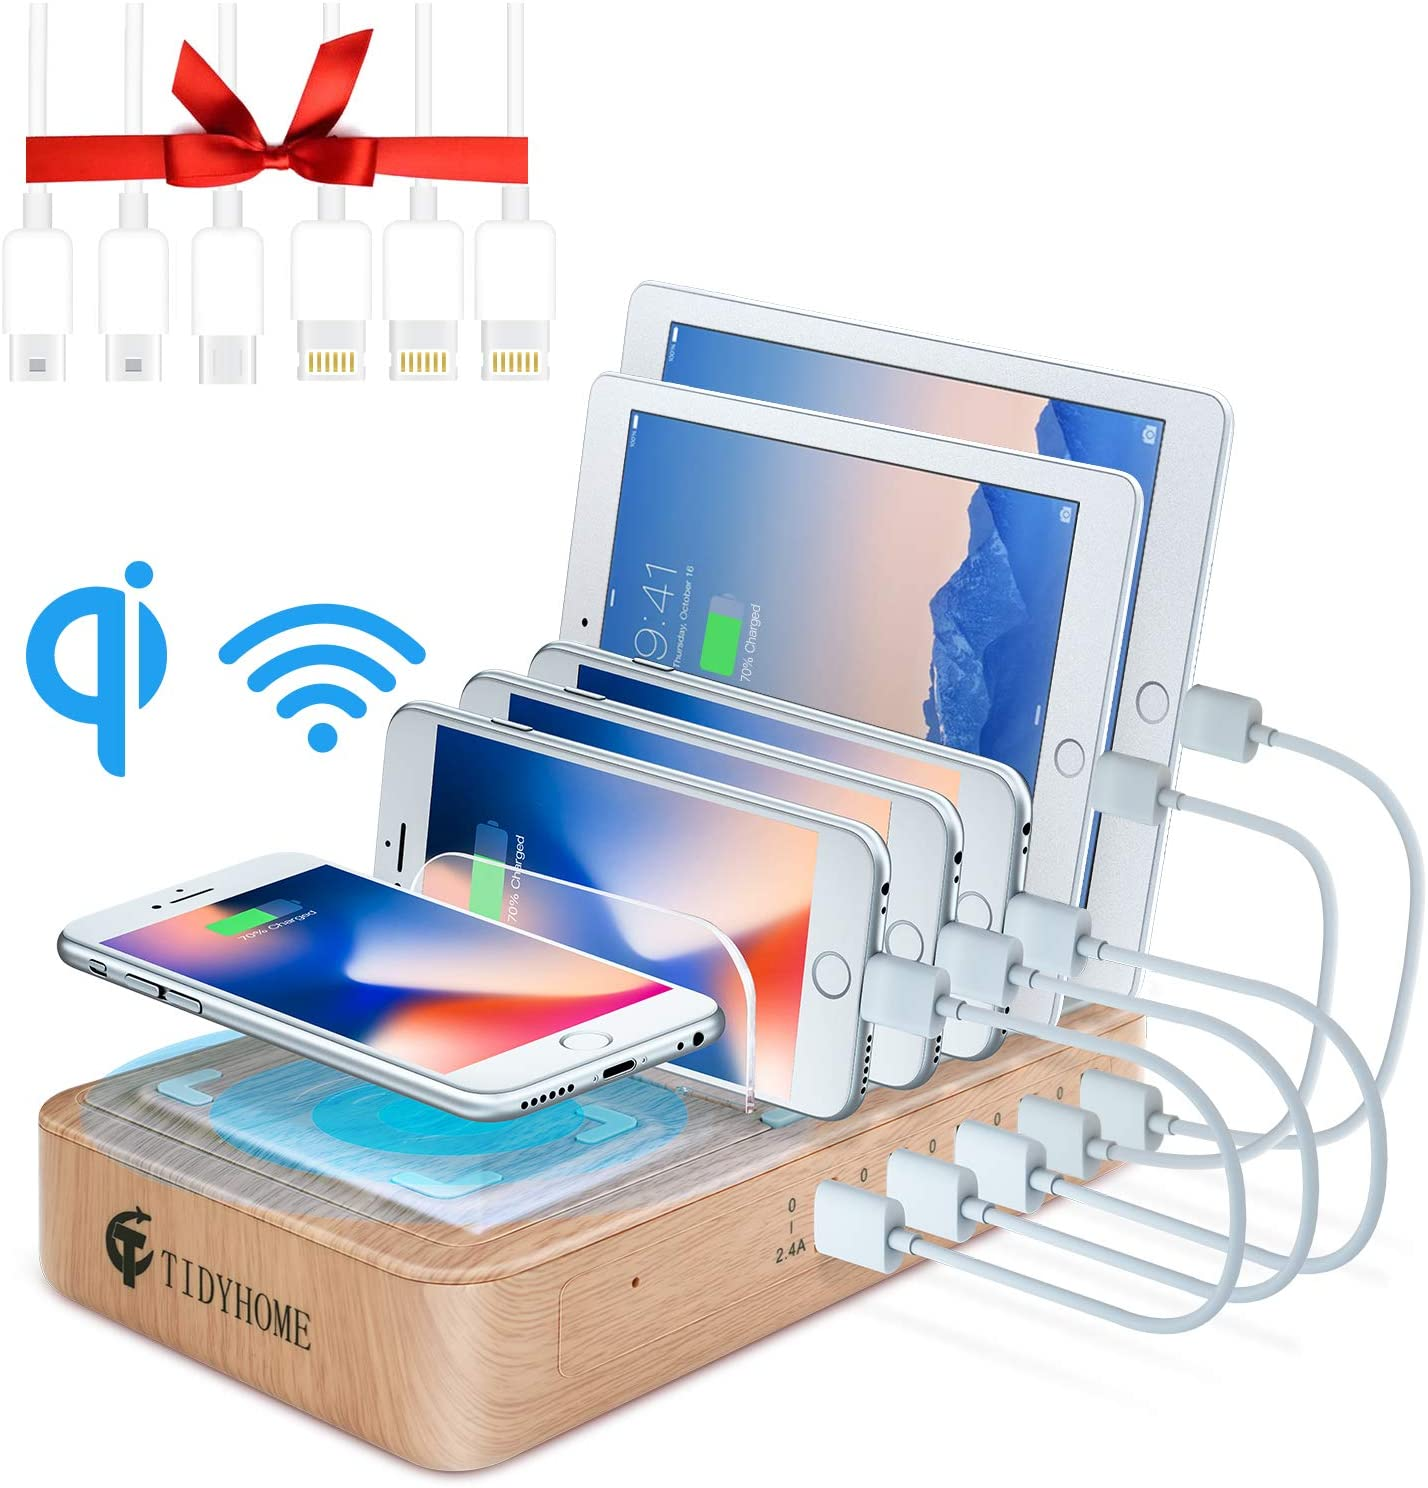 Charging station with office gadgets from TidyHome